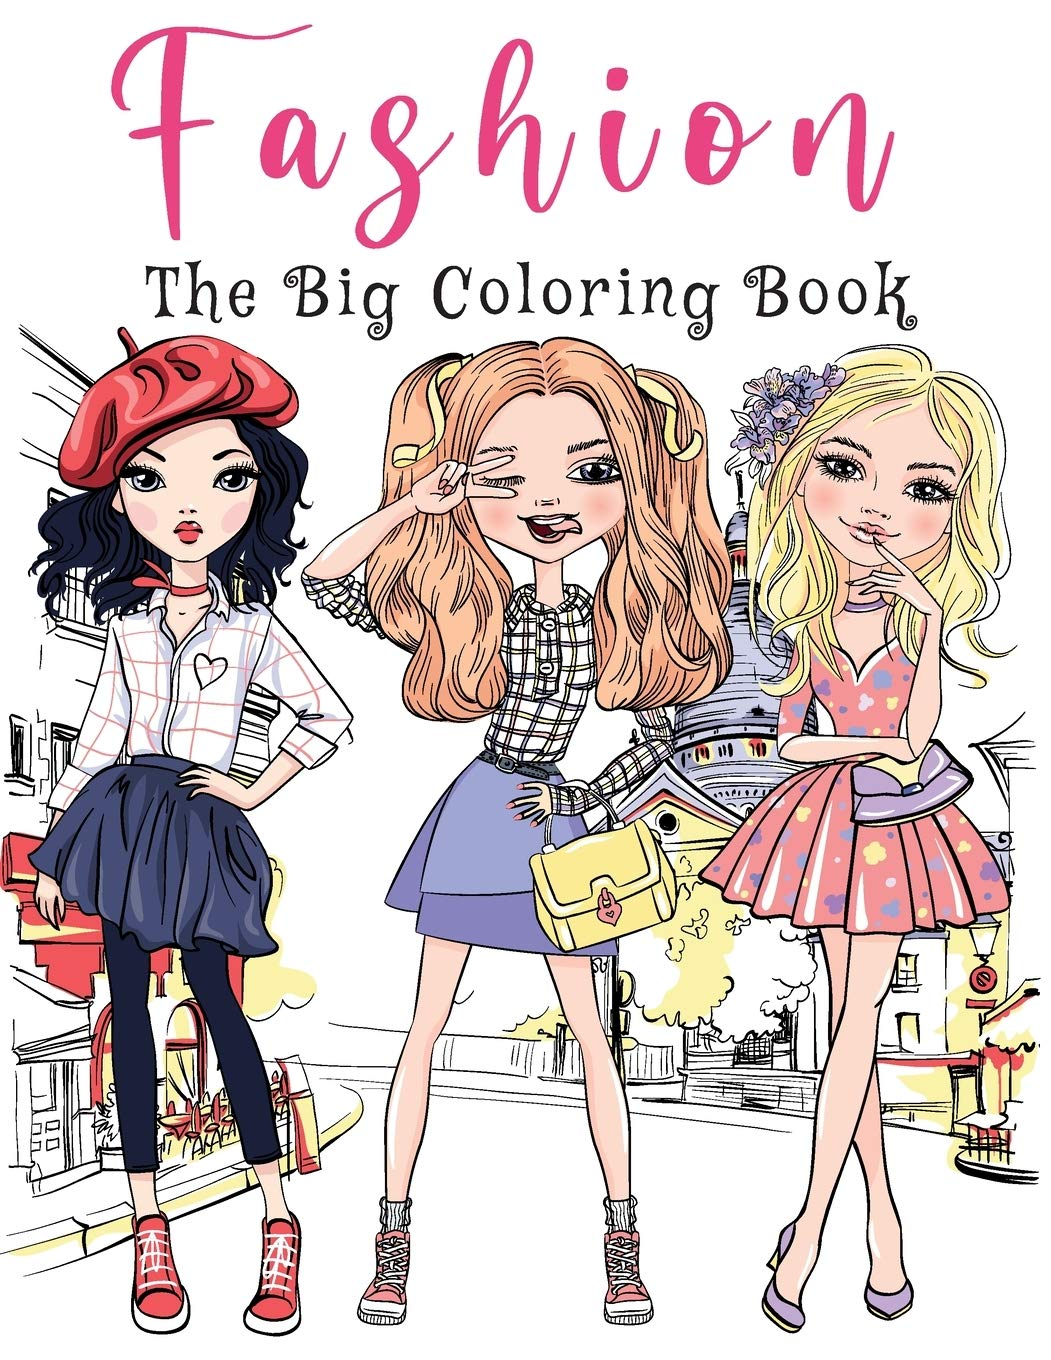 The Big Fashion Coloring Book Over 300 Fun And Stylish Fashion And Beauty Coloring Pages For Girls Kids Teens And Women With Gorgeous Fun Fashion Style Other Cute Designs Fammily Coloring